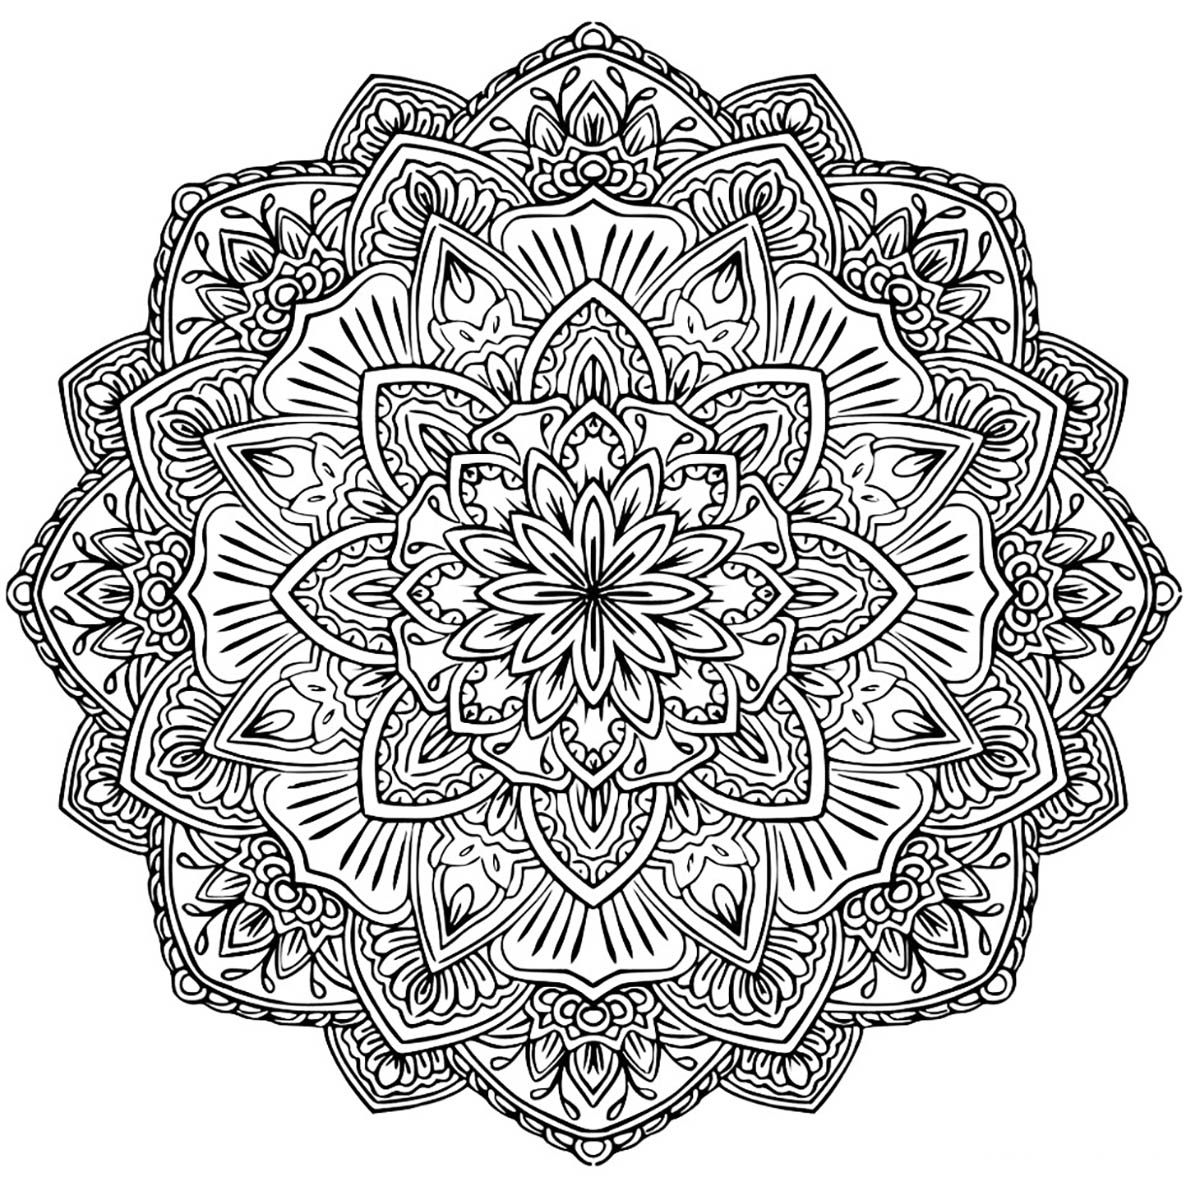 Mandala to download in pdf 1